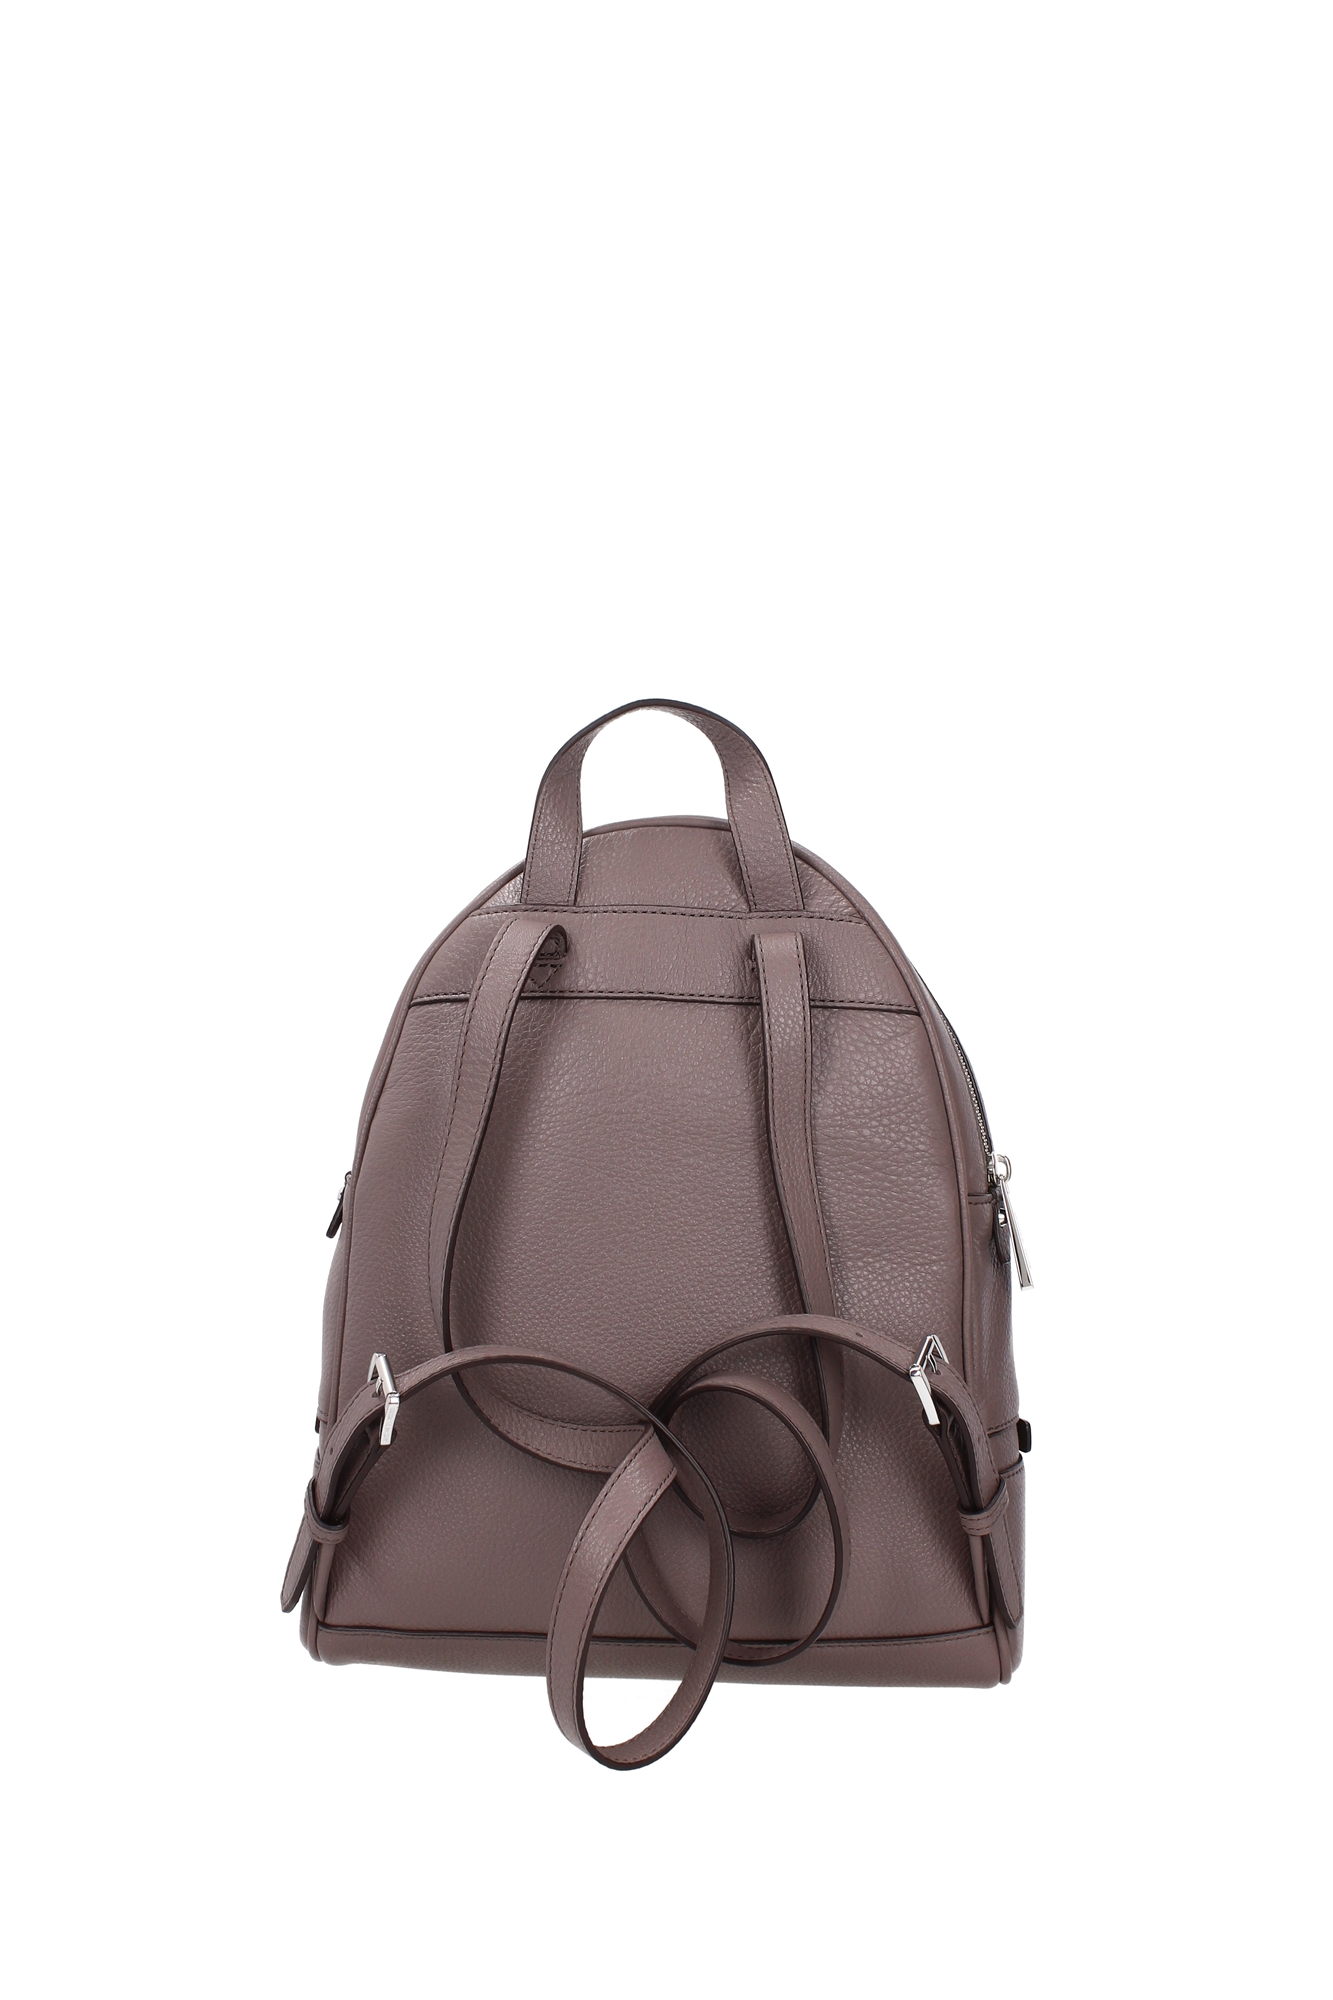 tasche rucksack michael kors damen leder grau. Black Bedroom Furniture Sets. Home Design Ideas